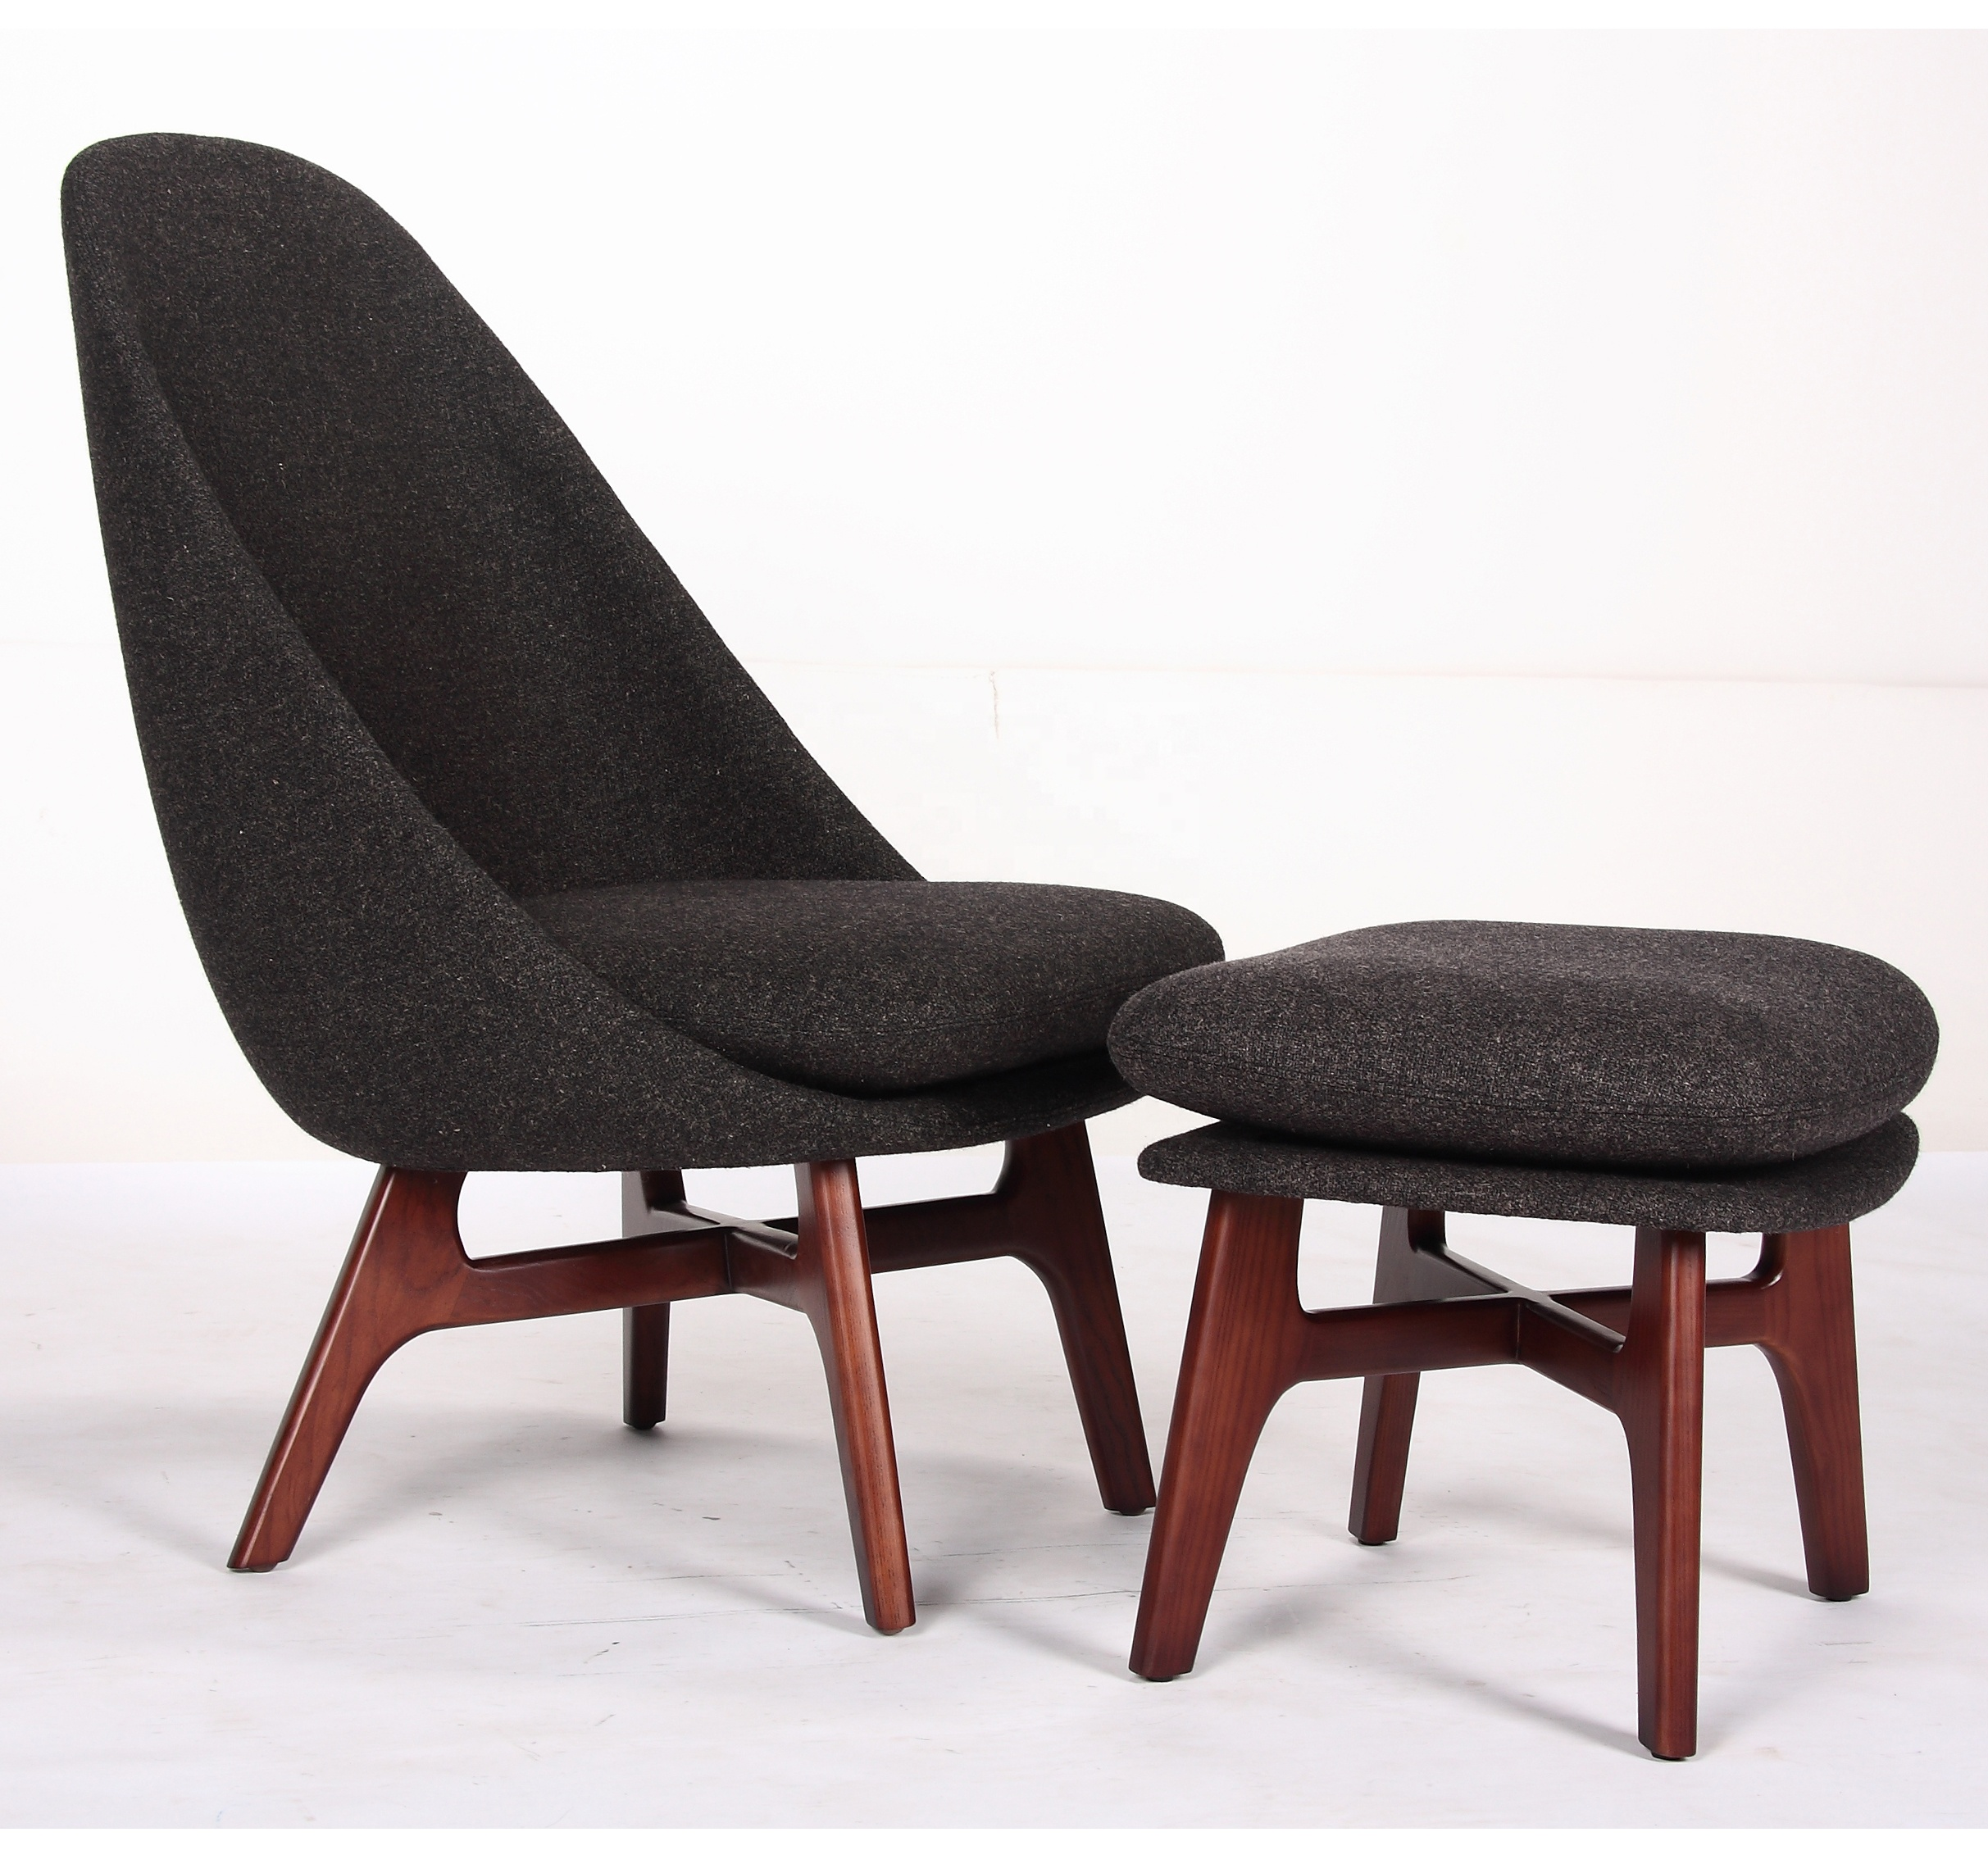 Phenomenal Solo Lounge Chair And Ottoman Buy Lounge Chair Chair And Ottoman Solo Chair Product On Alibaba Com Caraccident5 Cool Chair Designs And Ideas Caraccident5Info